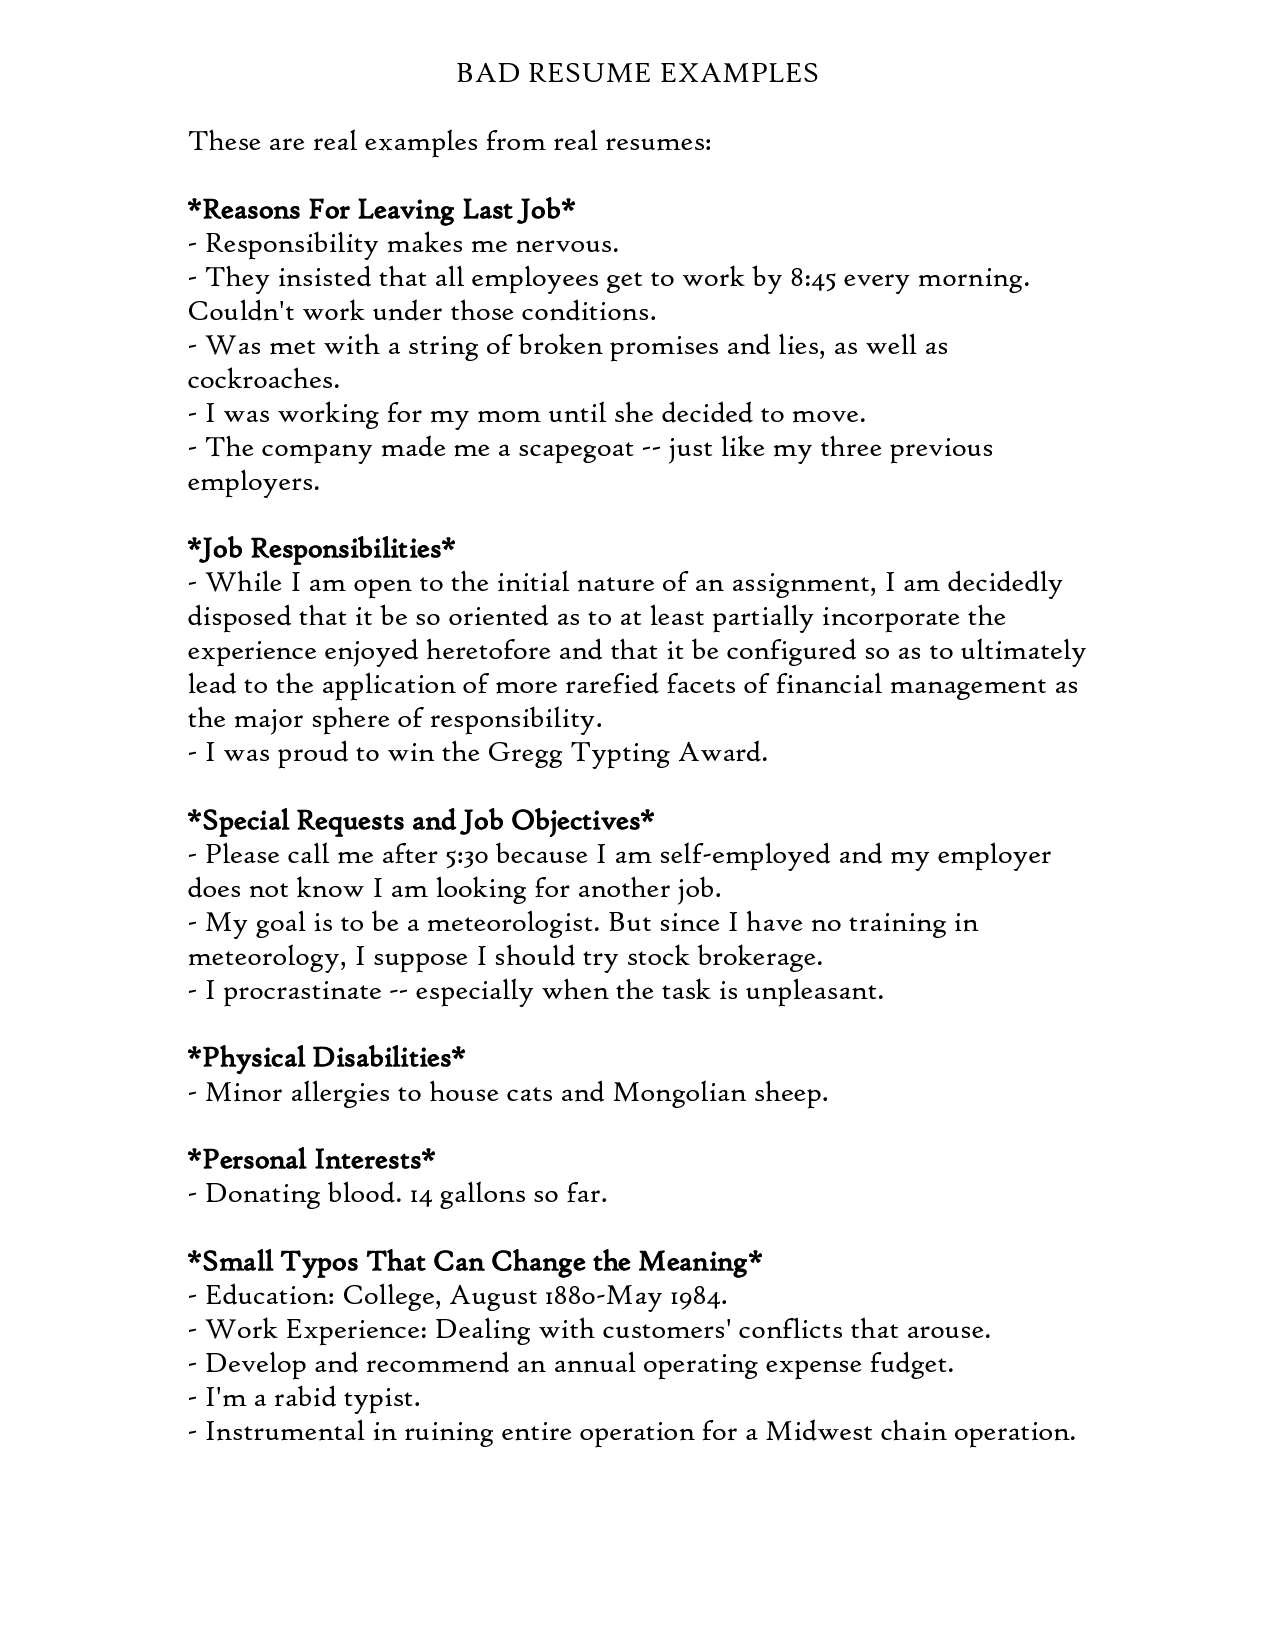 resume writing tips resume writing tips makemoney alex tk